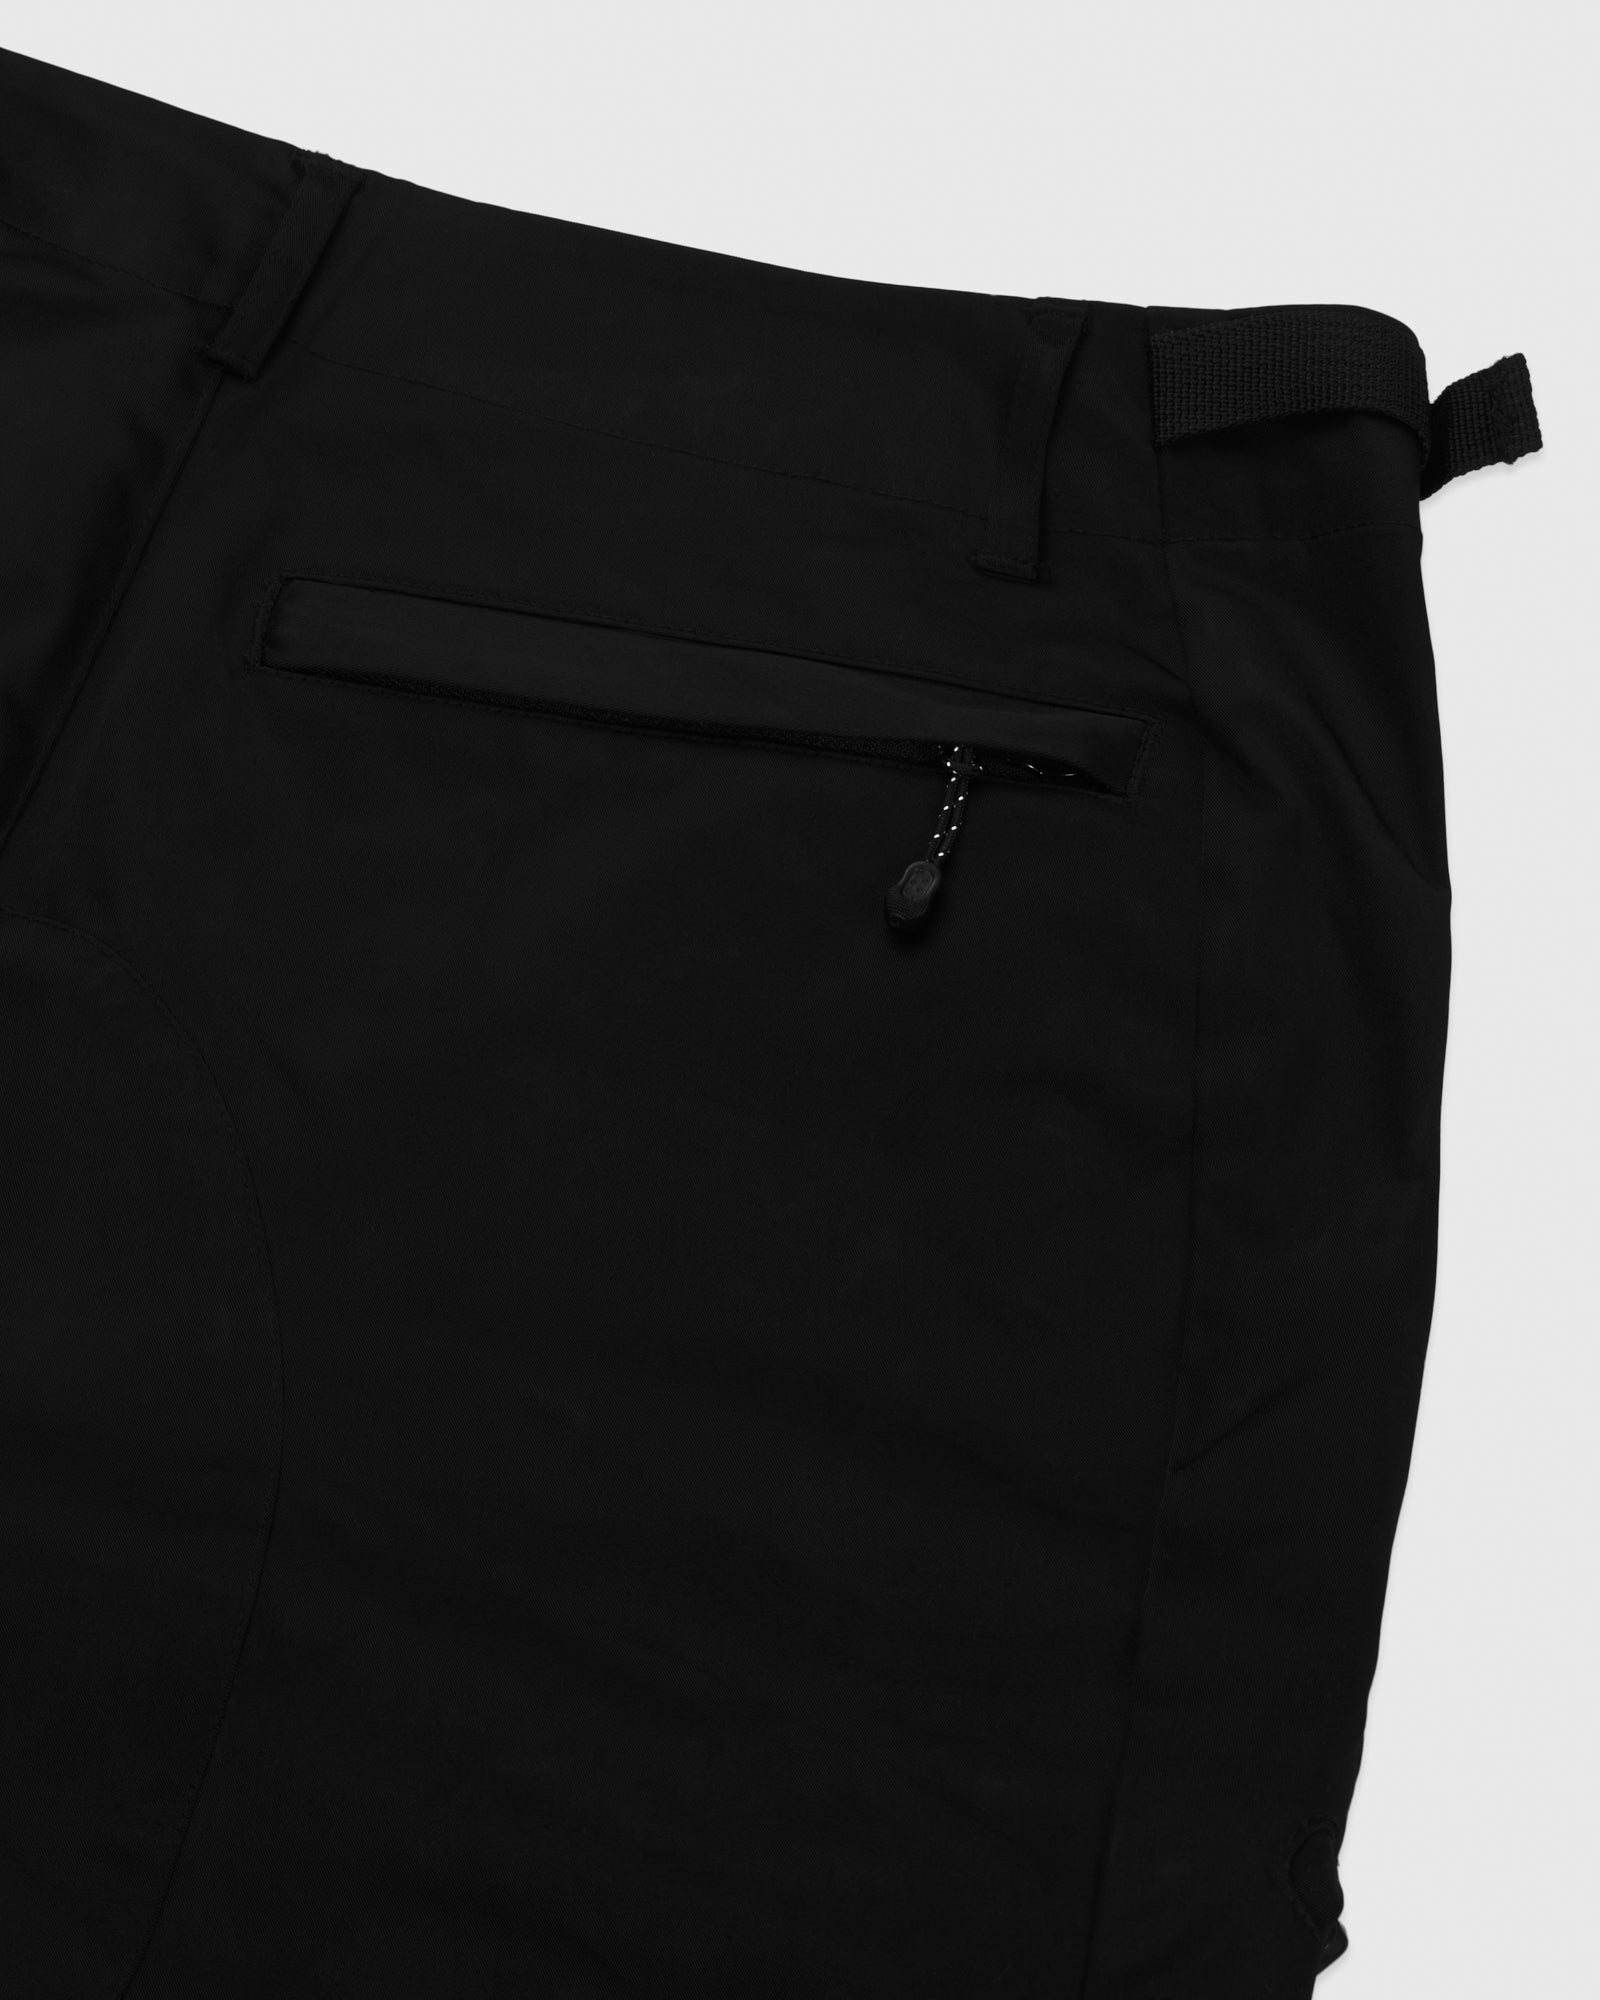 OVO INTERNATIONAL PANT - BLACK IMAGE #5